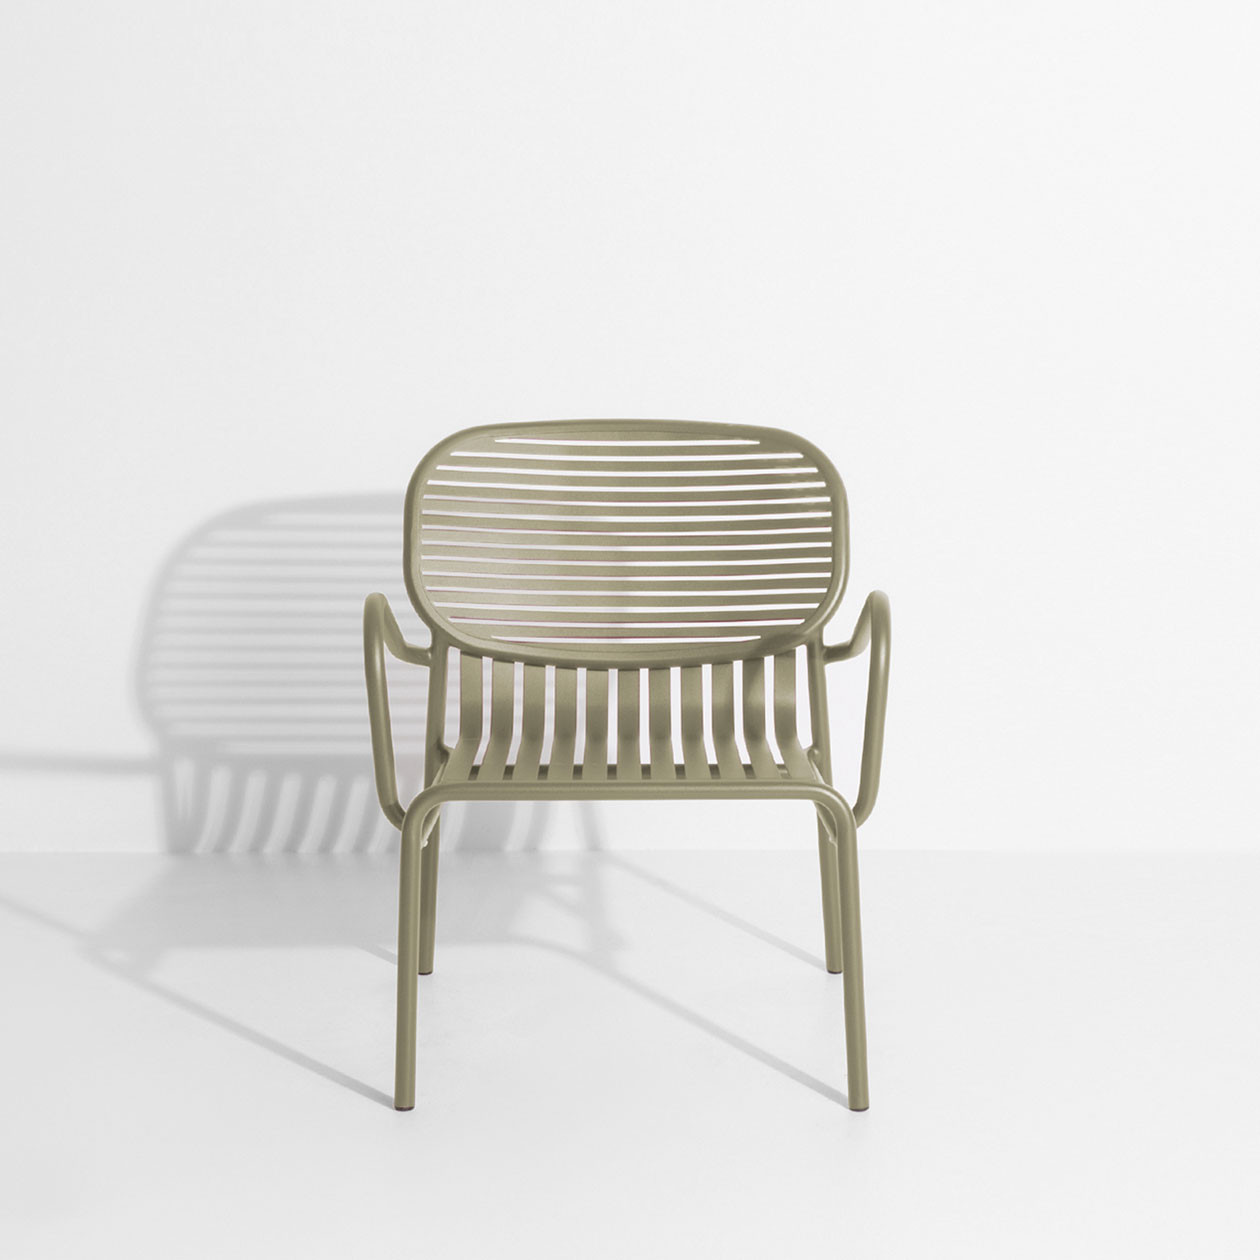 Week-End Armchair - The WEEK-END collection is a full range of outdoor furniture. Designed with practicality in mind, all of the seats are stackable. The Week-End collection is a complete range of outdoor furniture. The oval and circular shape drawn by the backrests makes them a graphic statement. The impact of the horizontal and vertical slats, so similar to stripes, highlights the full and empty spaces, asserting the identity of the collection.